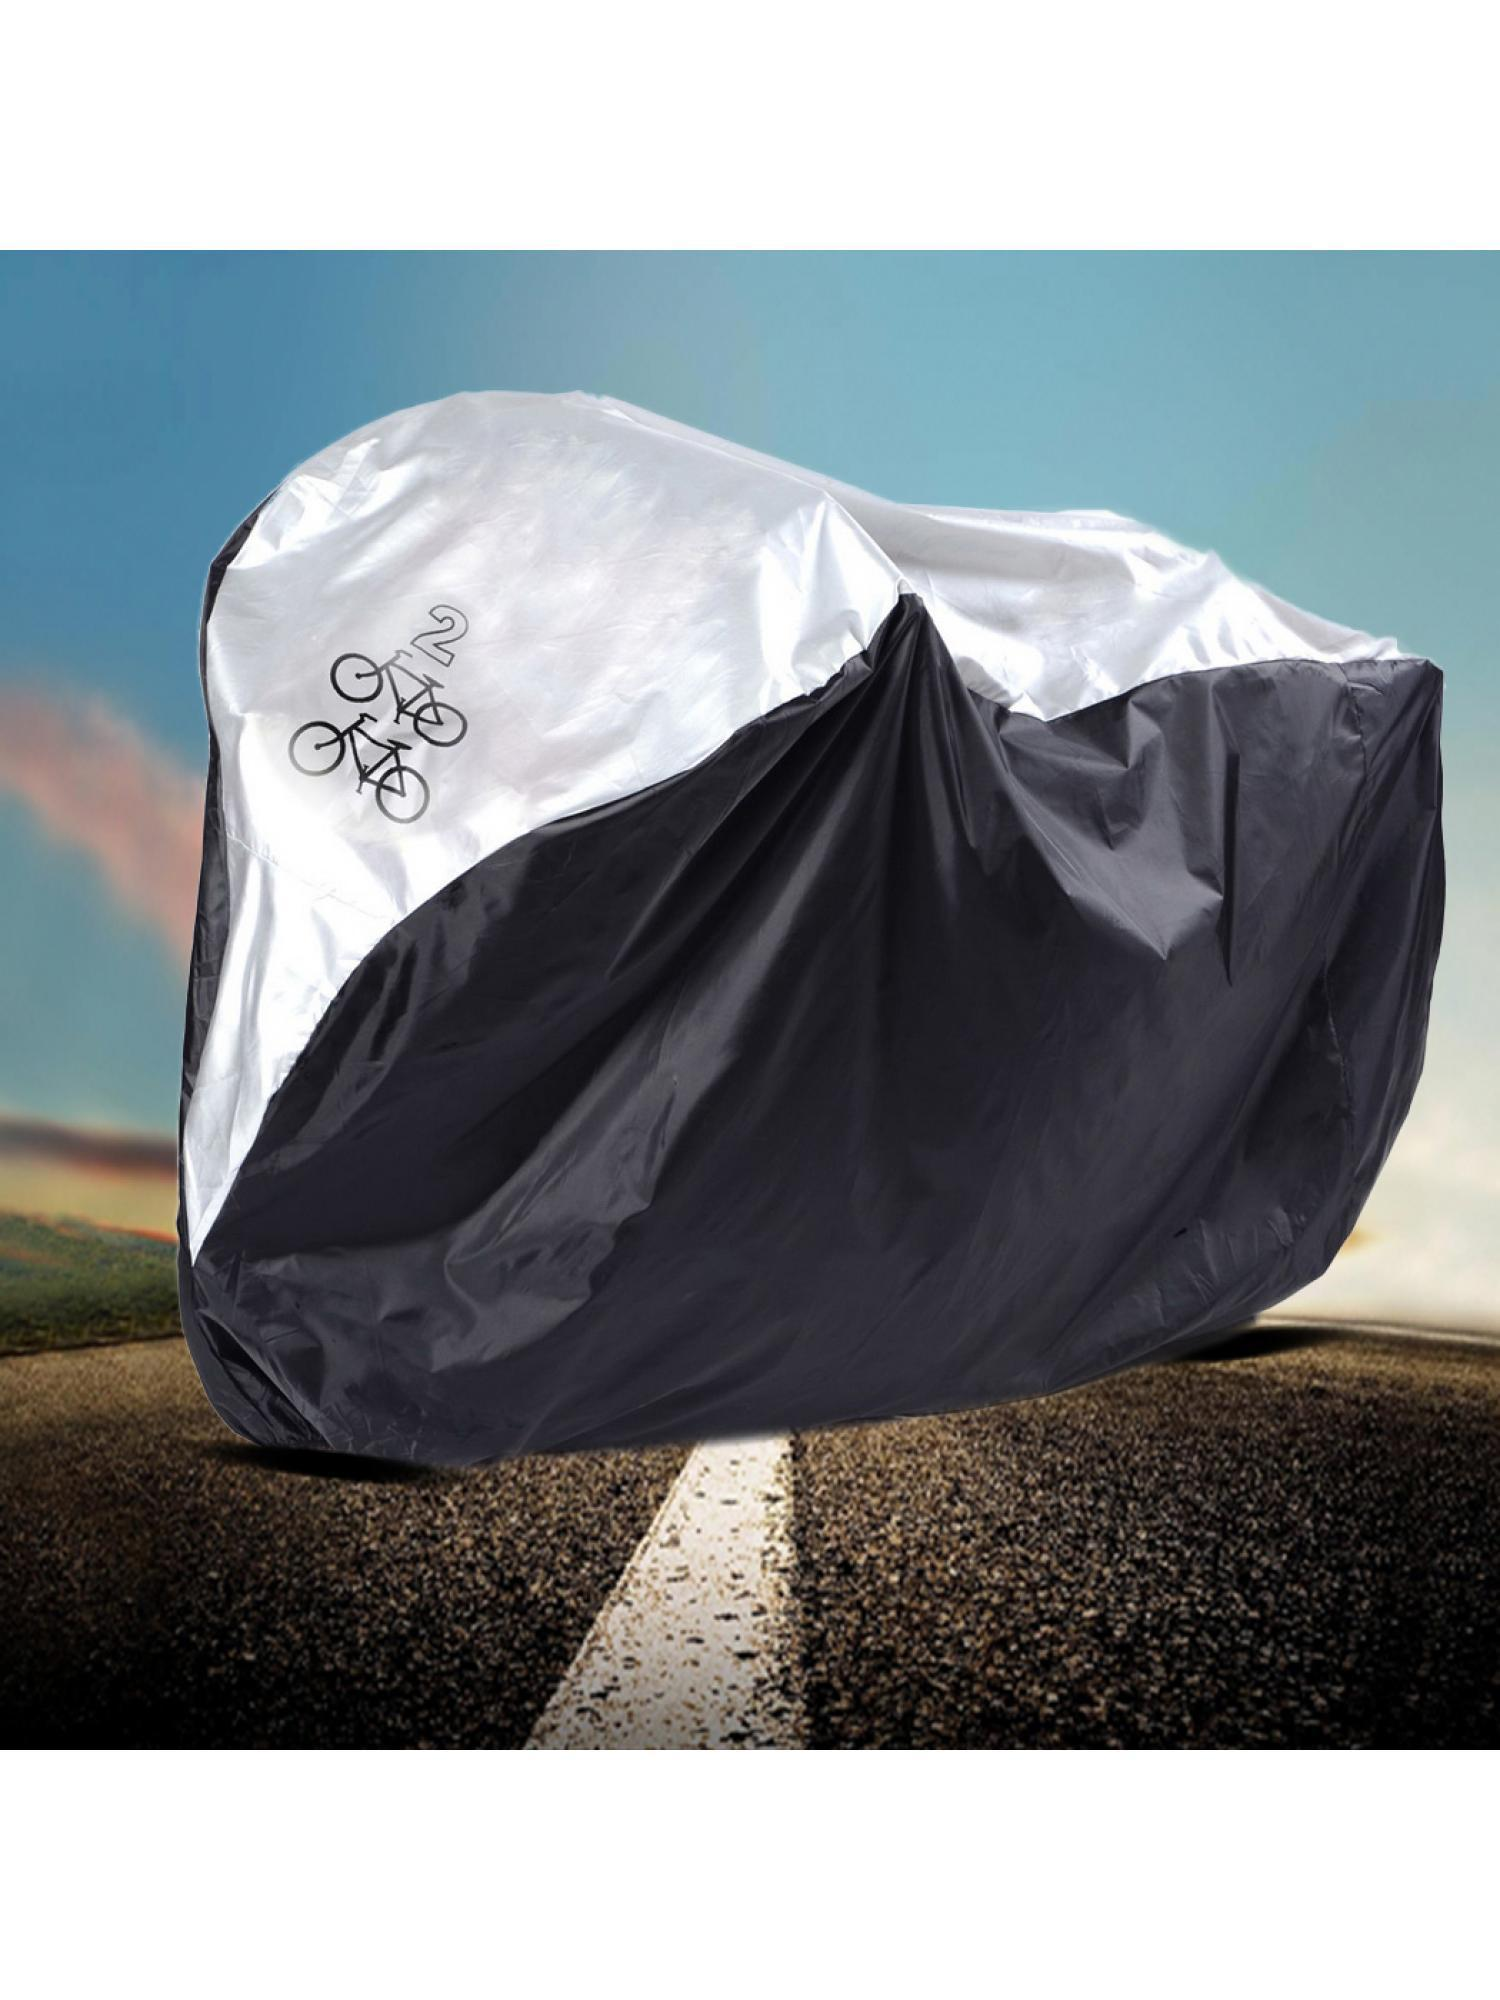 Waterproof Outdoor Bike Bicycle Cover Rain Dust Protector ANGHE by